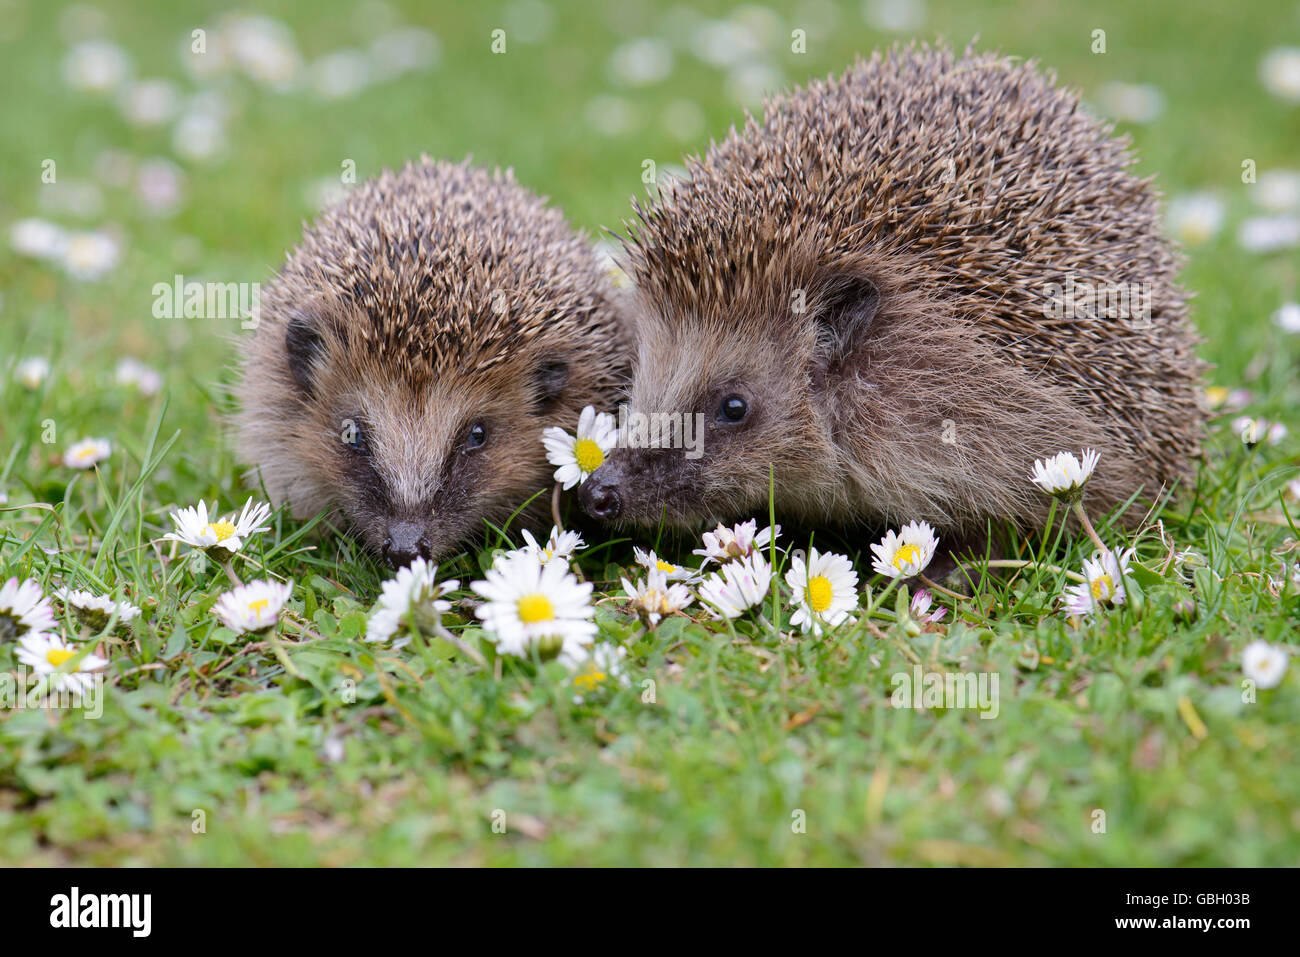 European hedgehogs, Lower Saxony, Germany / (Erinaceus europaeus) - Stock Image